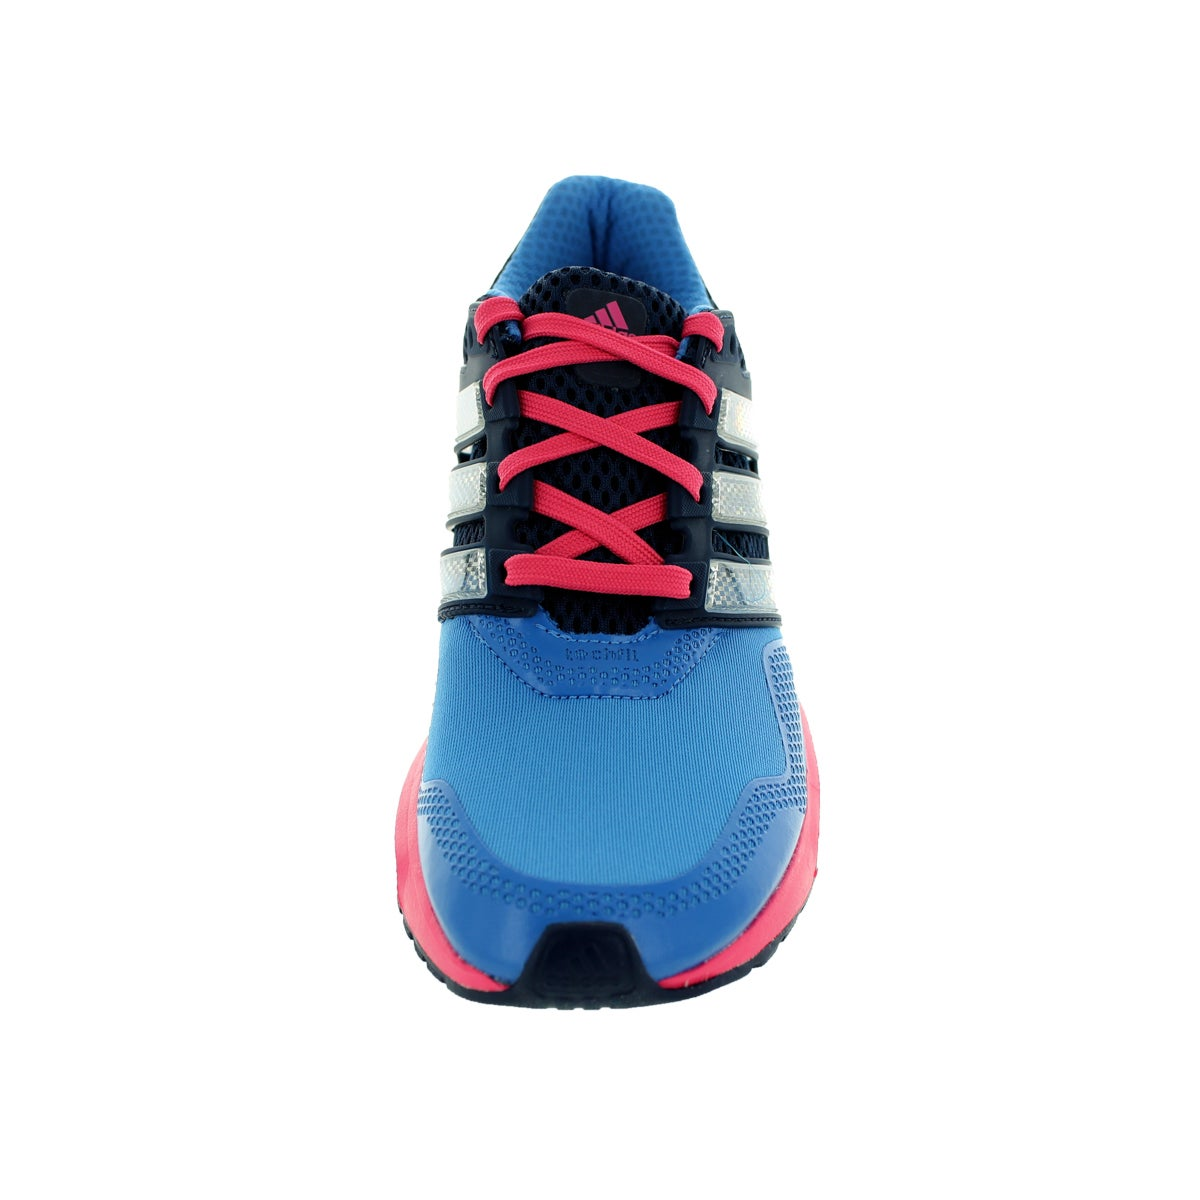 Shop 2 Adidas Women's Response Boost 2 Shop Techfit Running Shoe Free 60e861